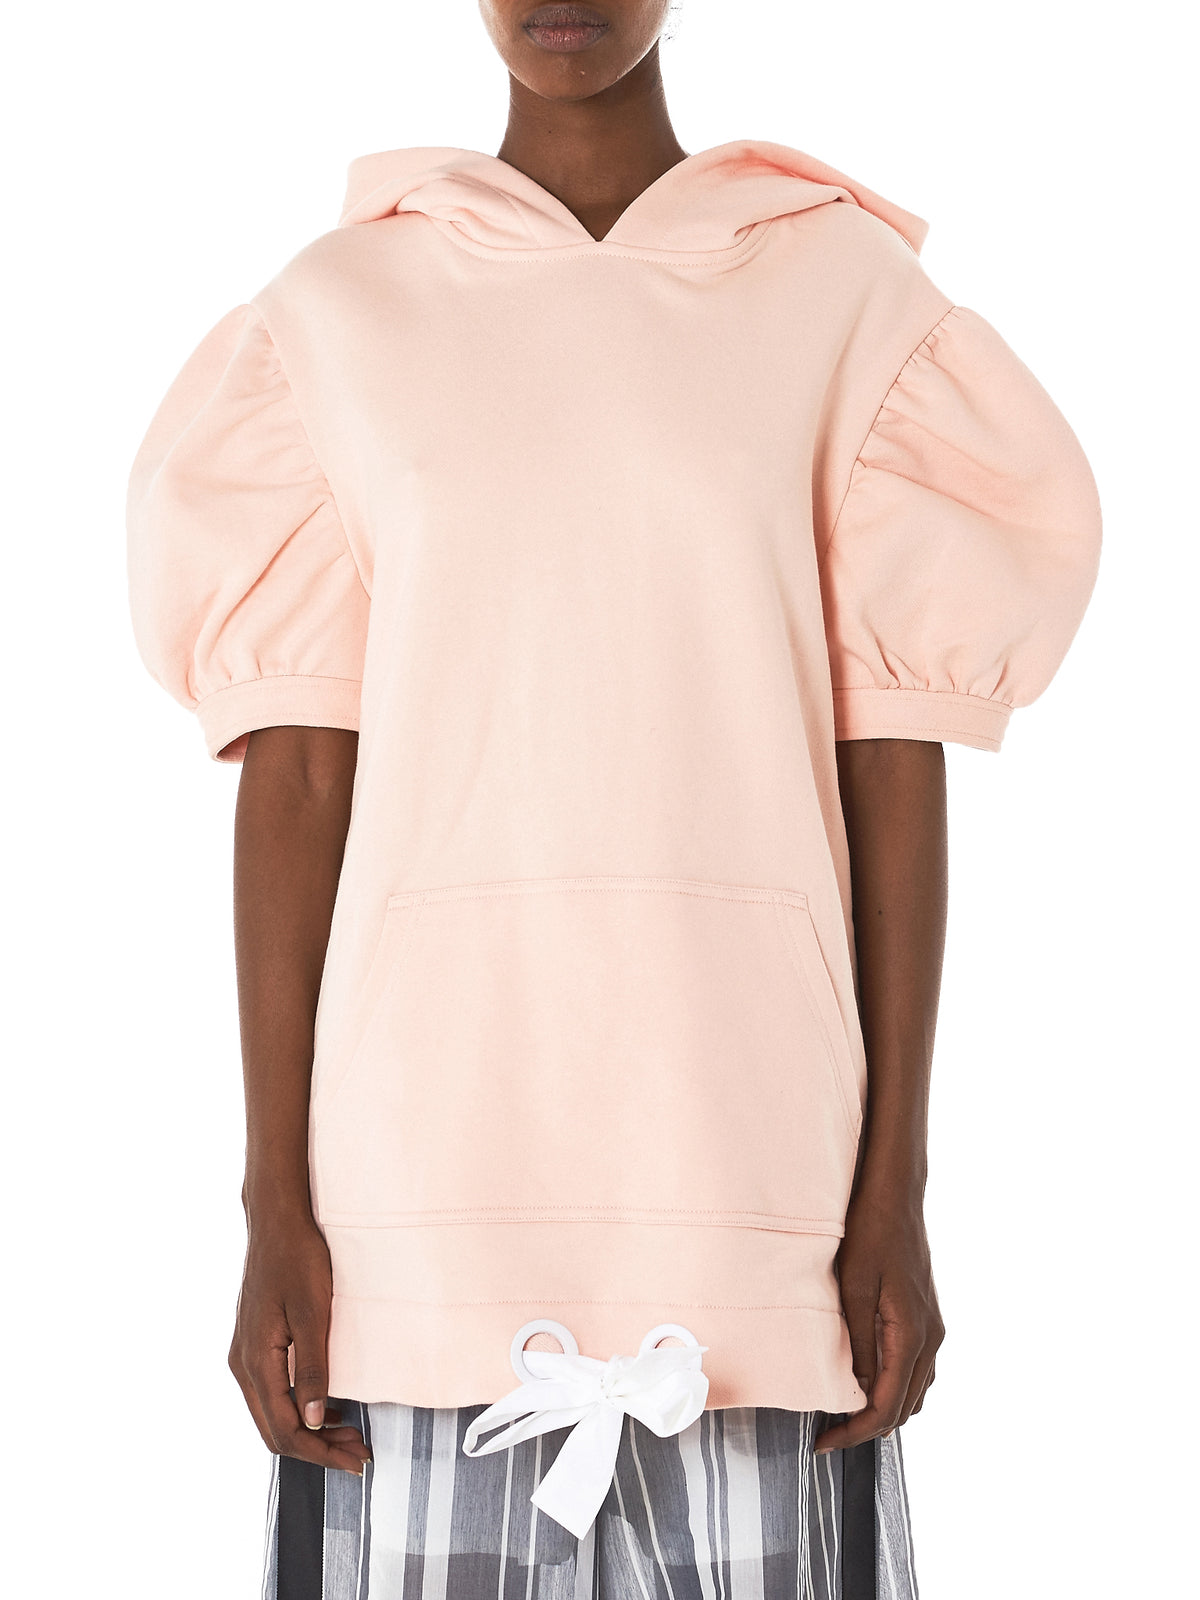 Puffed Sleeve Hooded Sweater (011-PINK)